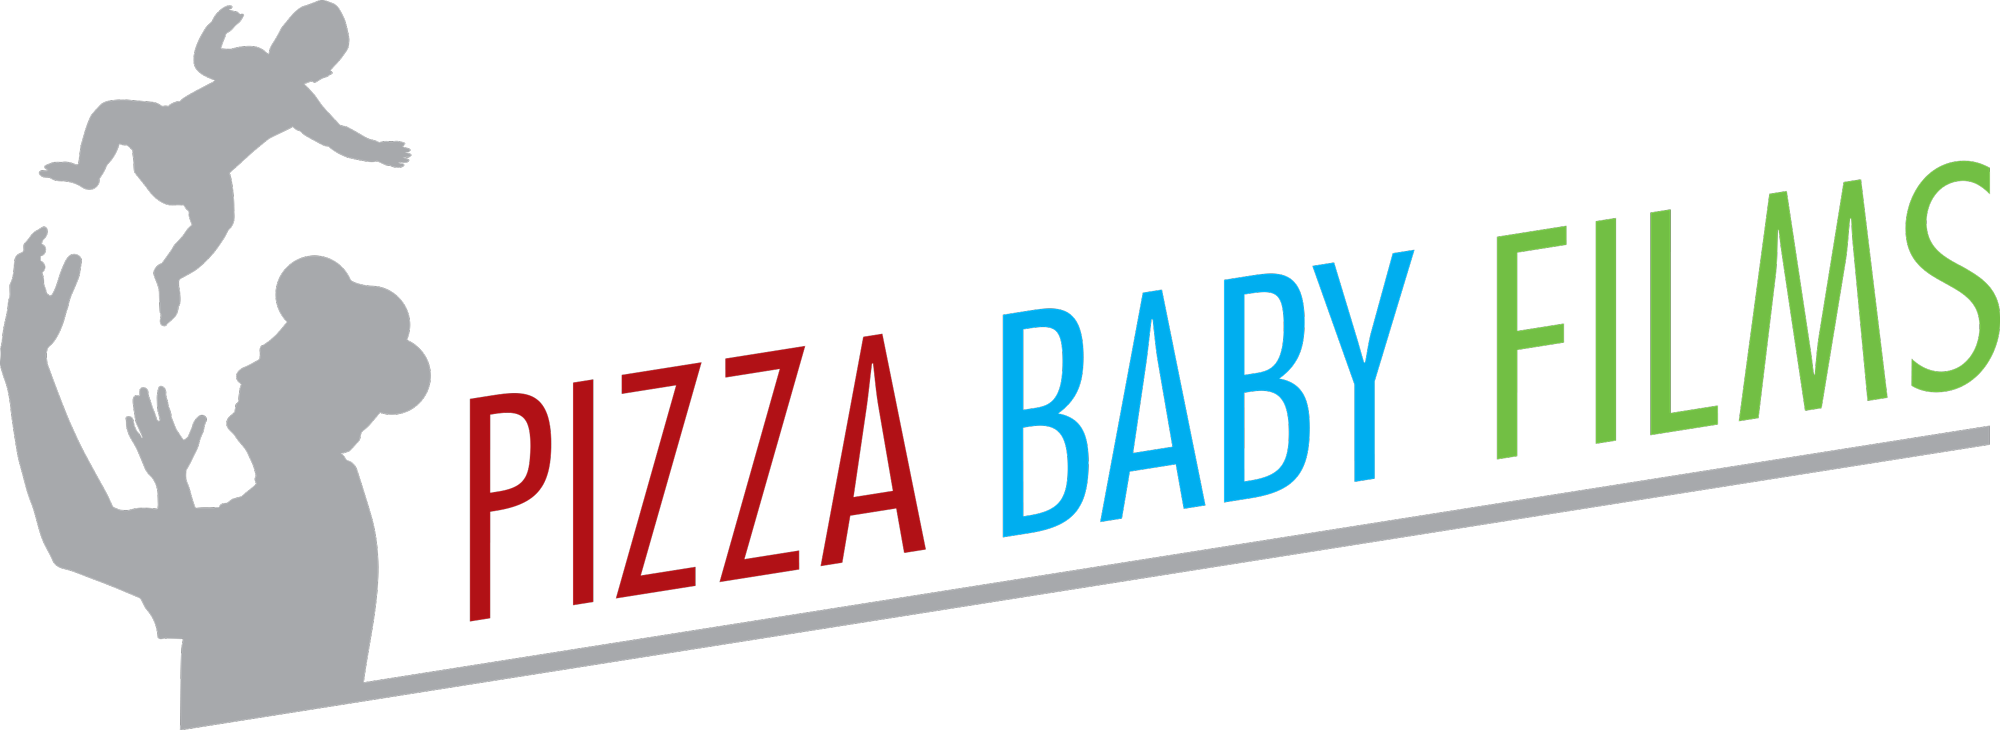 Pizza Baby Films Inc.